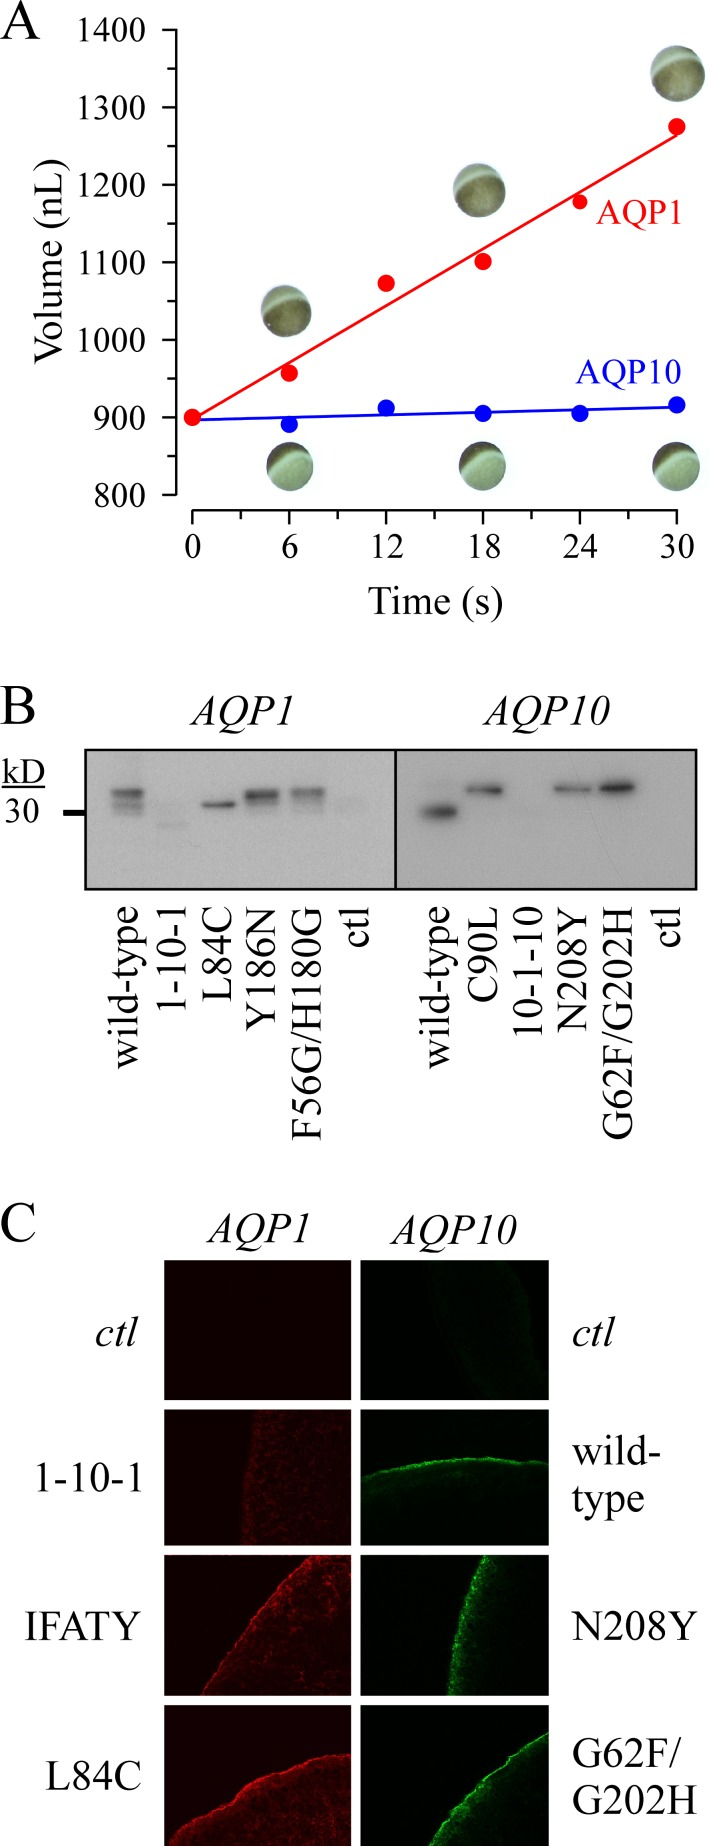 Illustrative experiments. (A) Water transport. After incubation in plain water, an oocyte expressing AQP1 and an oocyte expressing AQP10 were microphotographed at different time points for cell volume measurements. (B) Expression of wild-type and mutant AQPs by Western blot analyses. Samples correspond to cell surface proteins detected with an anti-AQP1 Ab (left) or an anti-AQP10 Ab (right). In each panel, water-injected oocytes were used as negative controls. (C) Immunofluorescence experiments. Cryosections postfixed in paraformaldehyde were obtained from AQP-expressing oocytes after a 3-d incubation in medium B1 at 18°C. Wild-type and mutant AQPs were detected with an anti-AQP1 Ab (left) or an anti-AQP10 Ab (right). For each Ab, water-injected oocytes were used as negative controls. Micrographs were taken under confocal microscopy and are shown in the panel for some of the AQPs: (top left) water, (second left) AQP1 1-10-1 , (third left) AQP1 LGRND→IFATY , (bottom left) AQP1 L84C , (top right) water, (second right) wild-type AQP10, (third right) AQP10 N208Y , and (bottom right) AQP10 G62F/G202H . Note that each of the micrographs is ~300 μm in actual width.